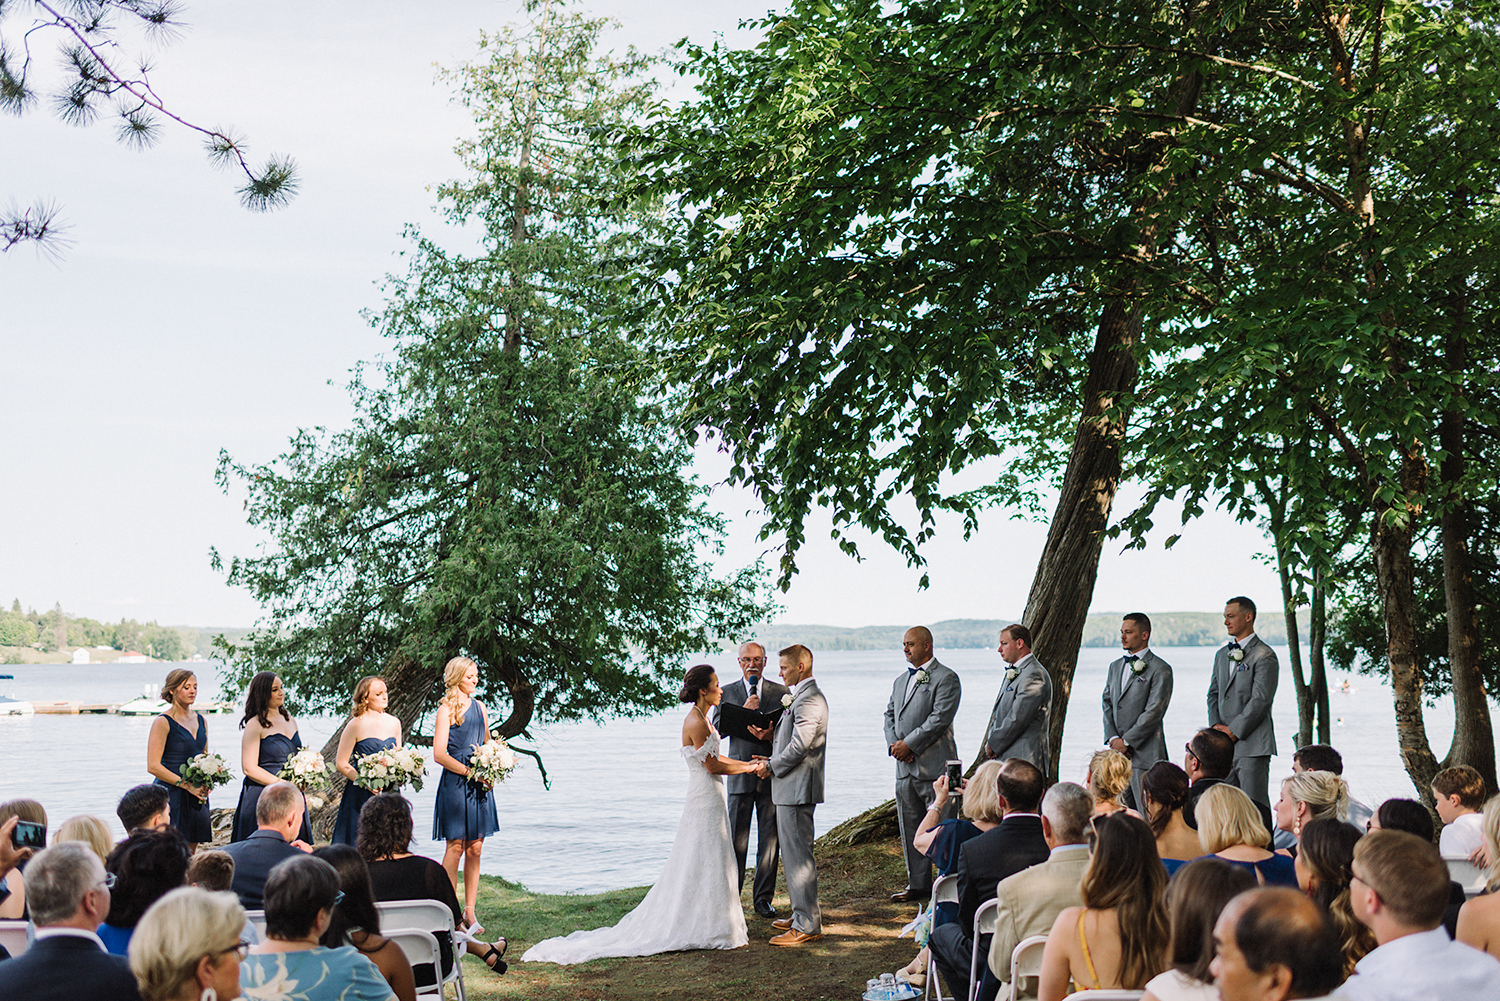 toronto-wedding-photographers-hidden-valley-resort-ryanne-hollies-photography-documentary-photojournalistic-fine-art-wedding-photography-lakeside-ceremony-cottage-country-bride-and-groom-saying-vows-bride-emotional-groom-and-all-guests.jpg